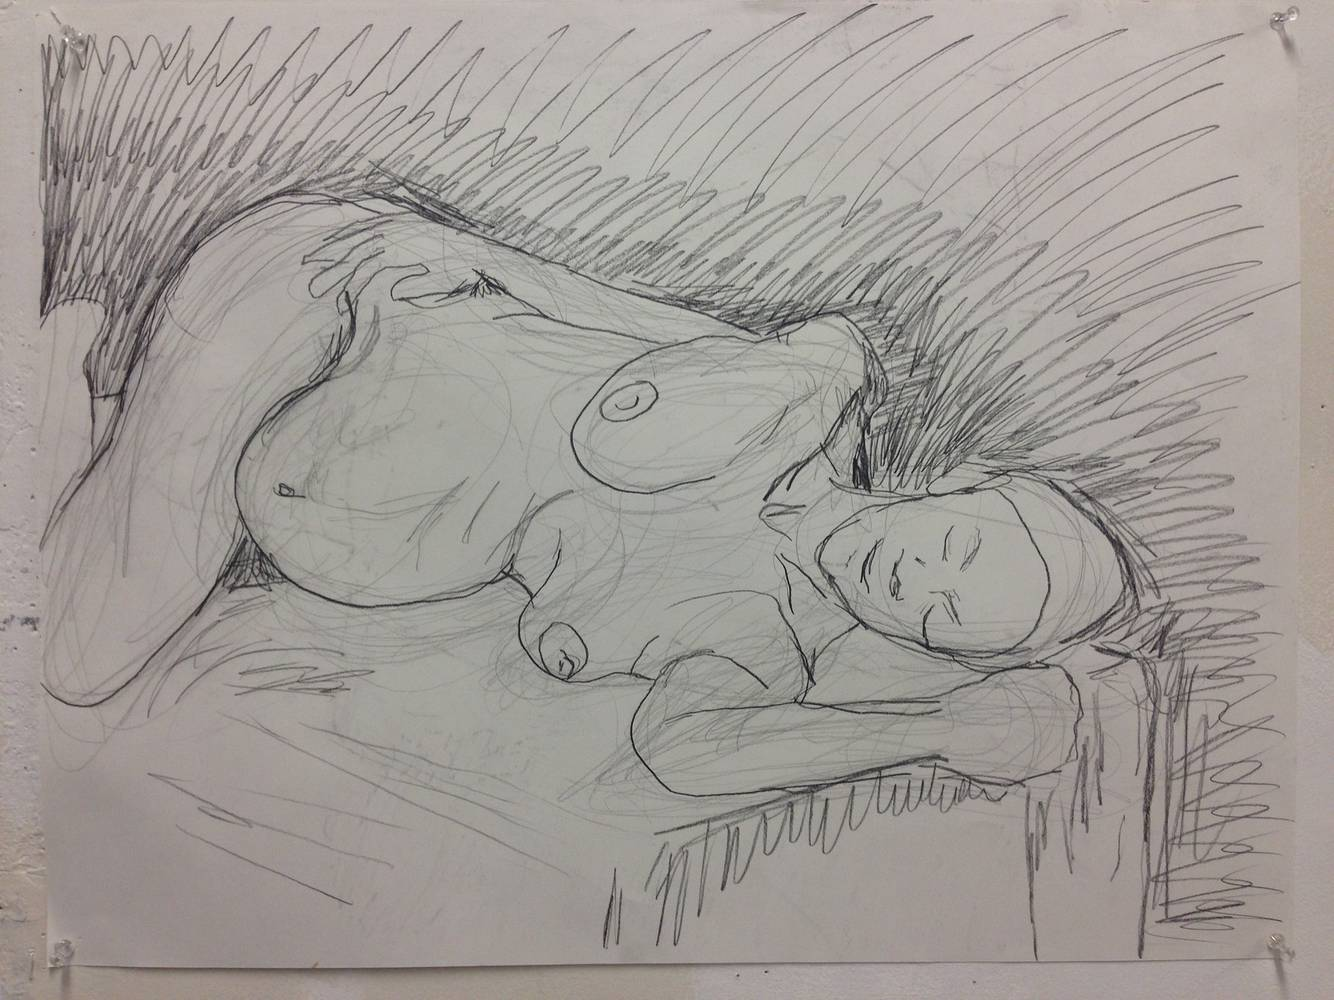 Pregnant Woman on her side. graphite on paper by Edward Miller